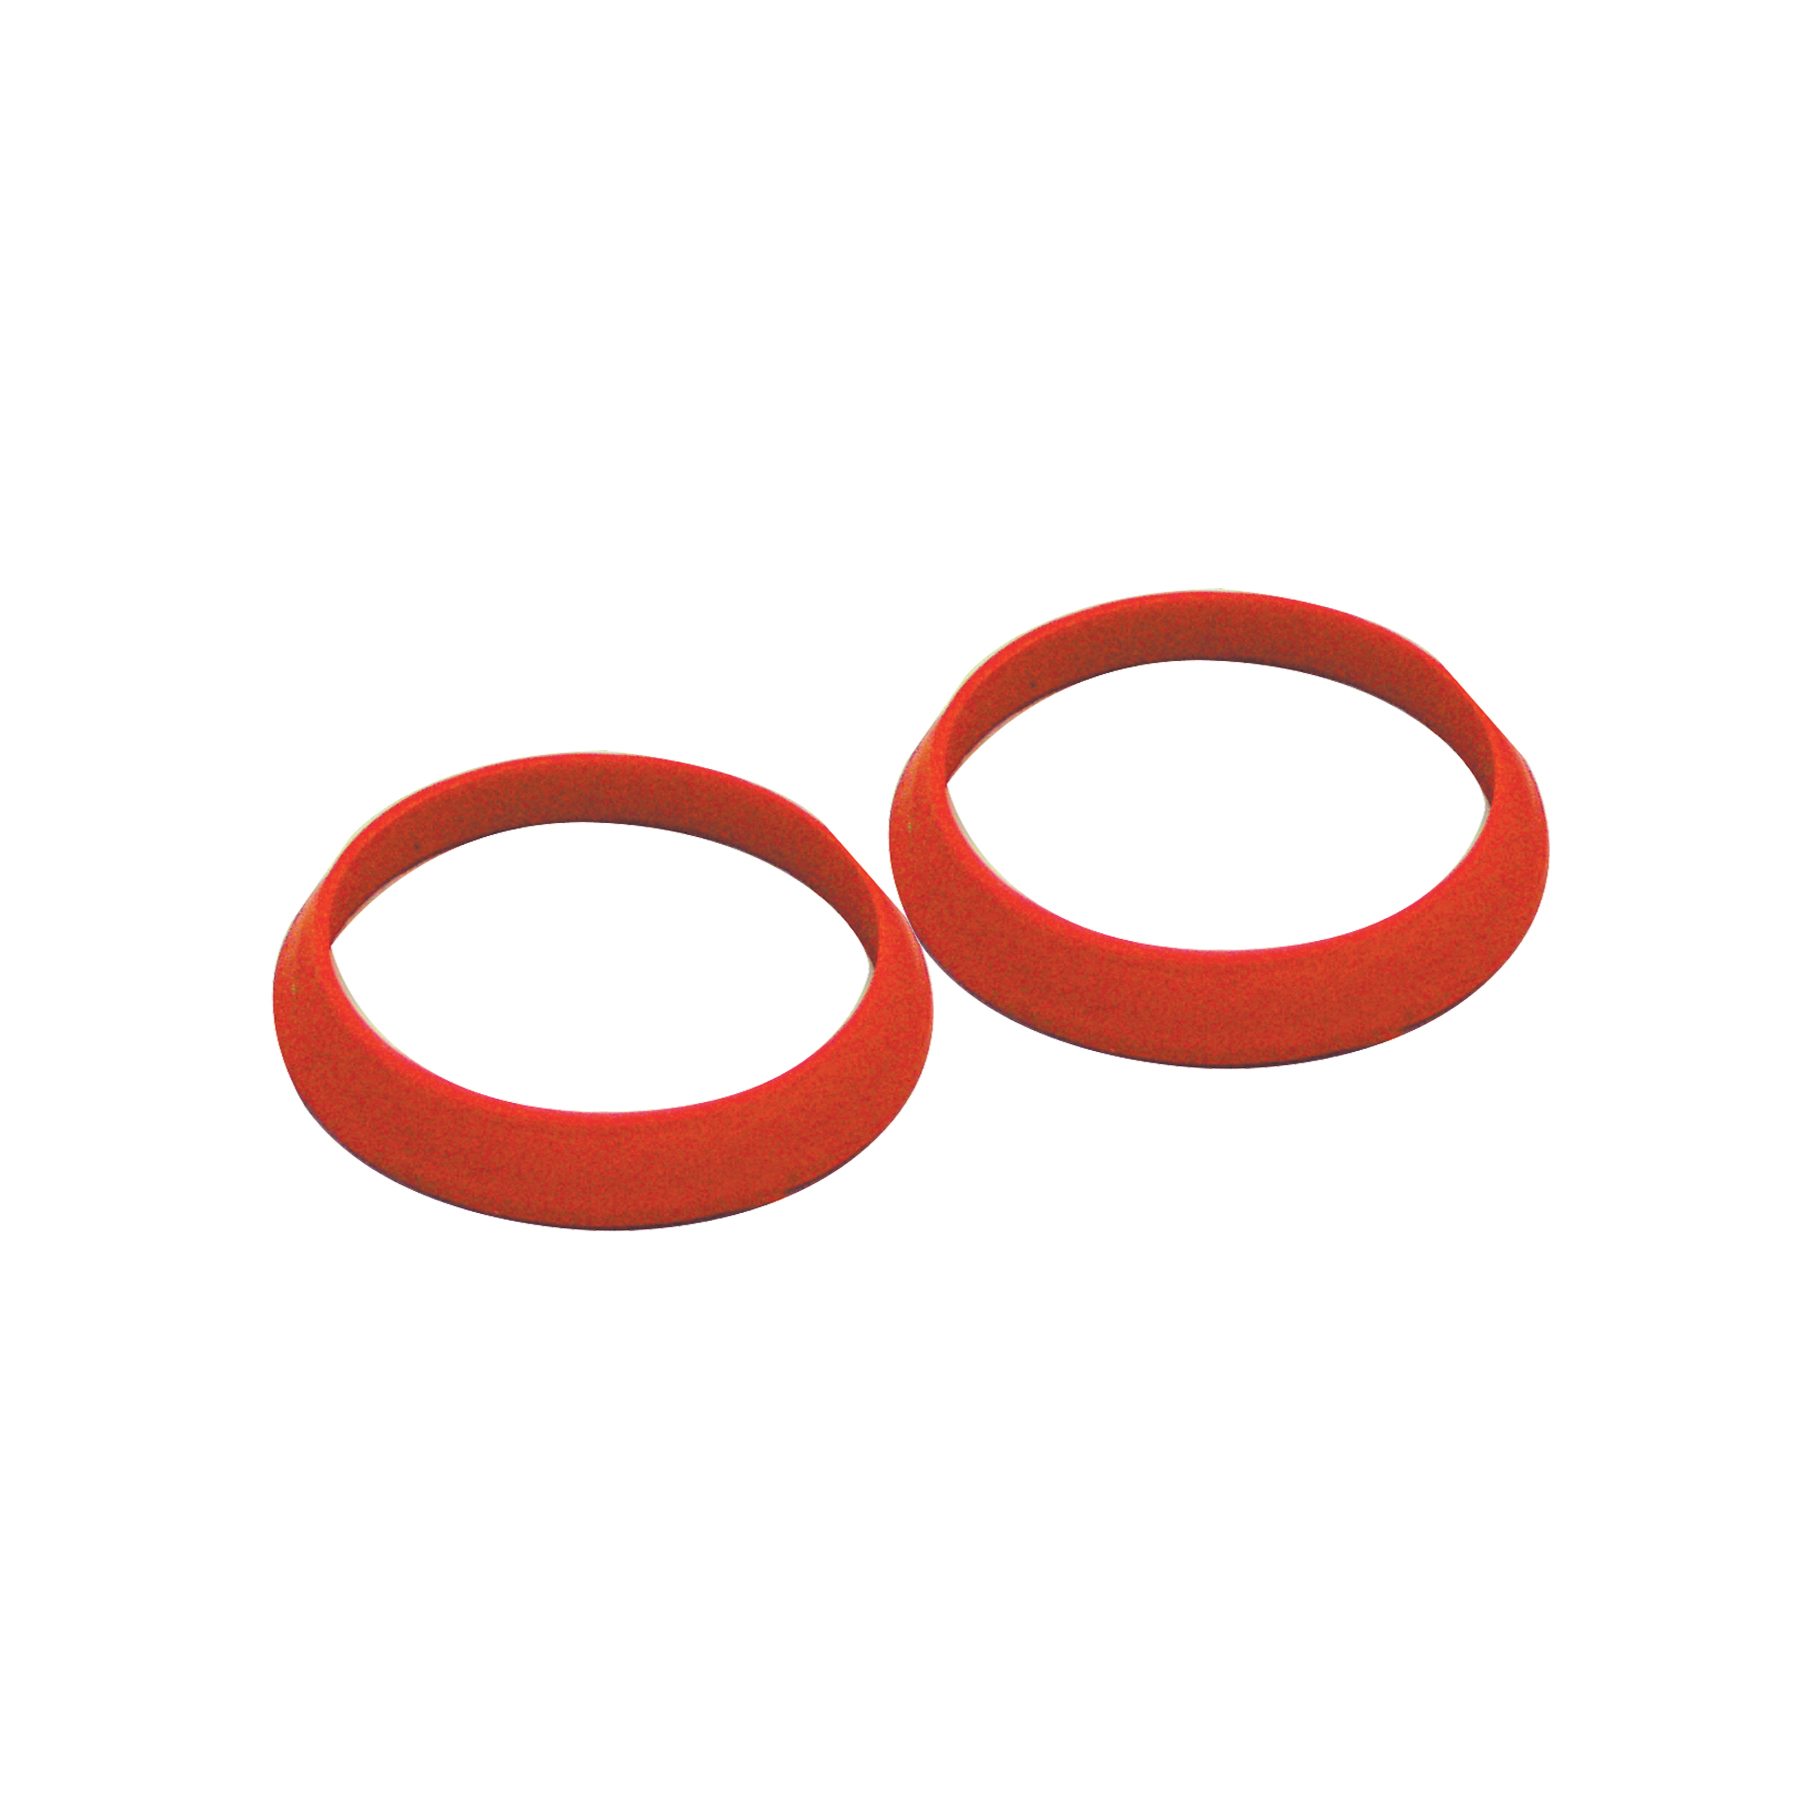 Keeney 50915K Beveled Slip Joint Washer, Thermoplastic Rubber